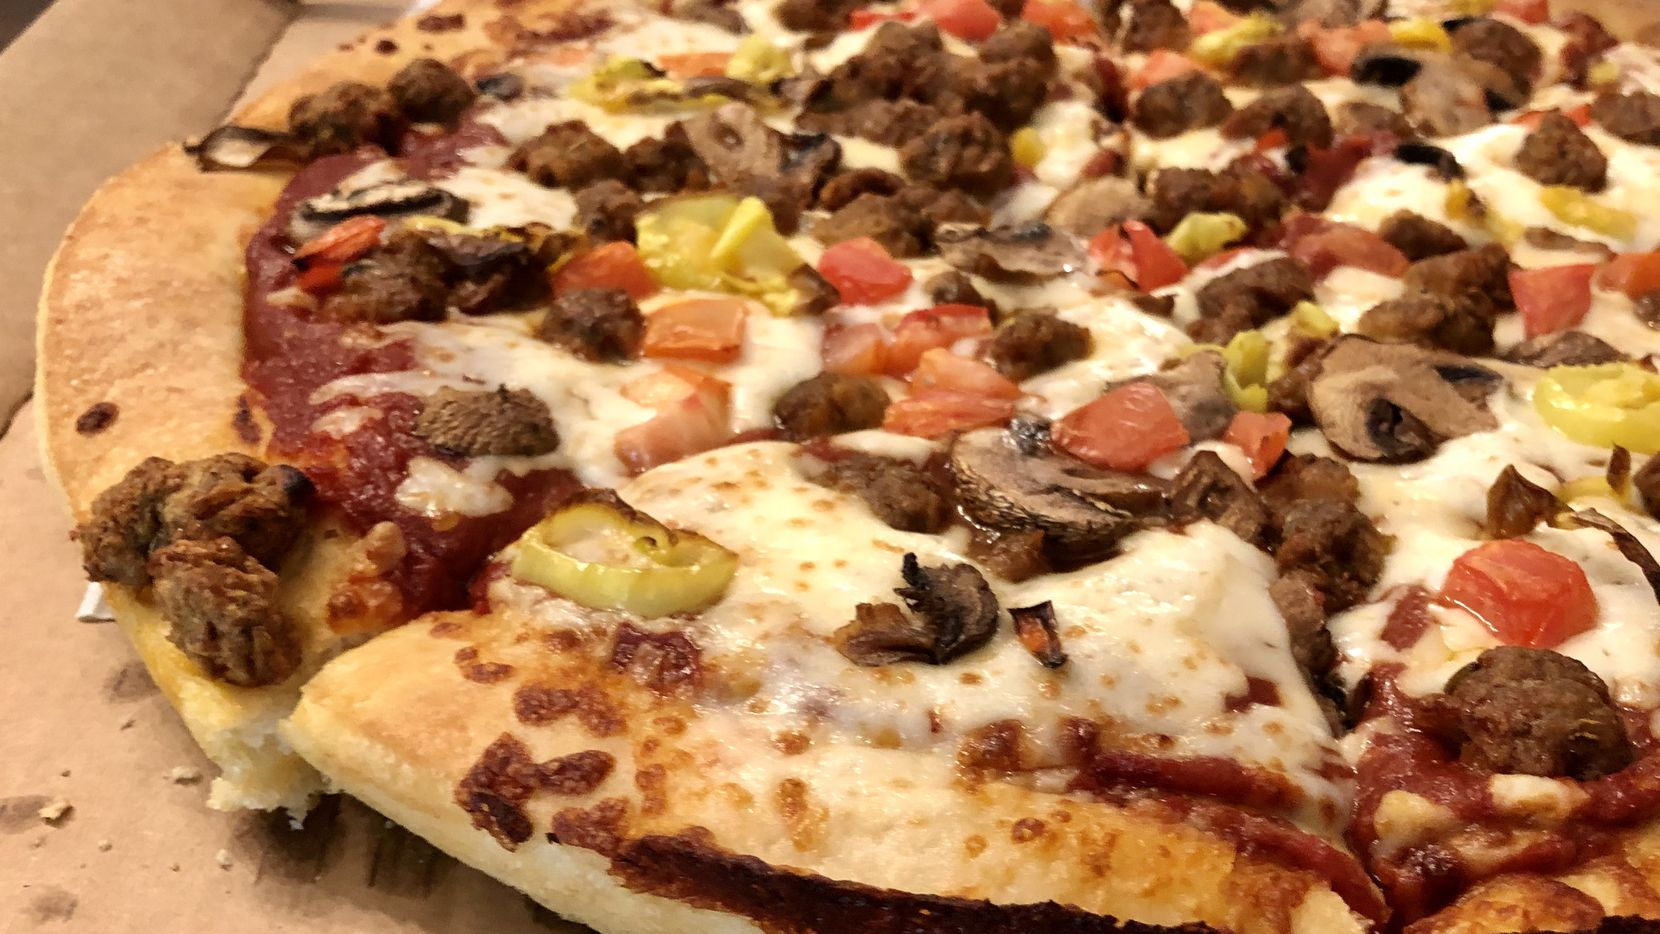 Both of the Beyond Meat pizzas at Pizza Hut come with Beyond Italian Sausage — a plant-based meat substitute.